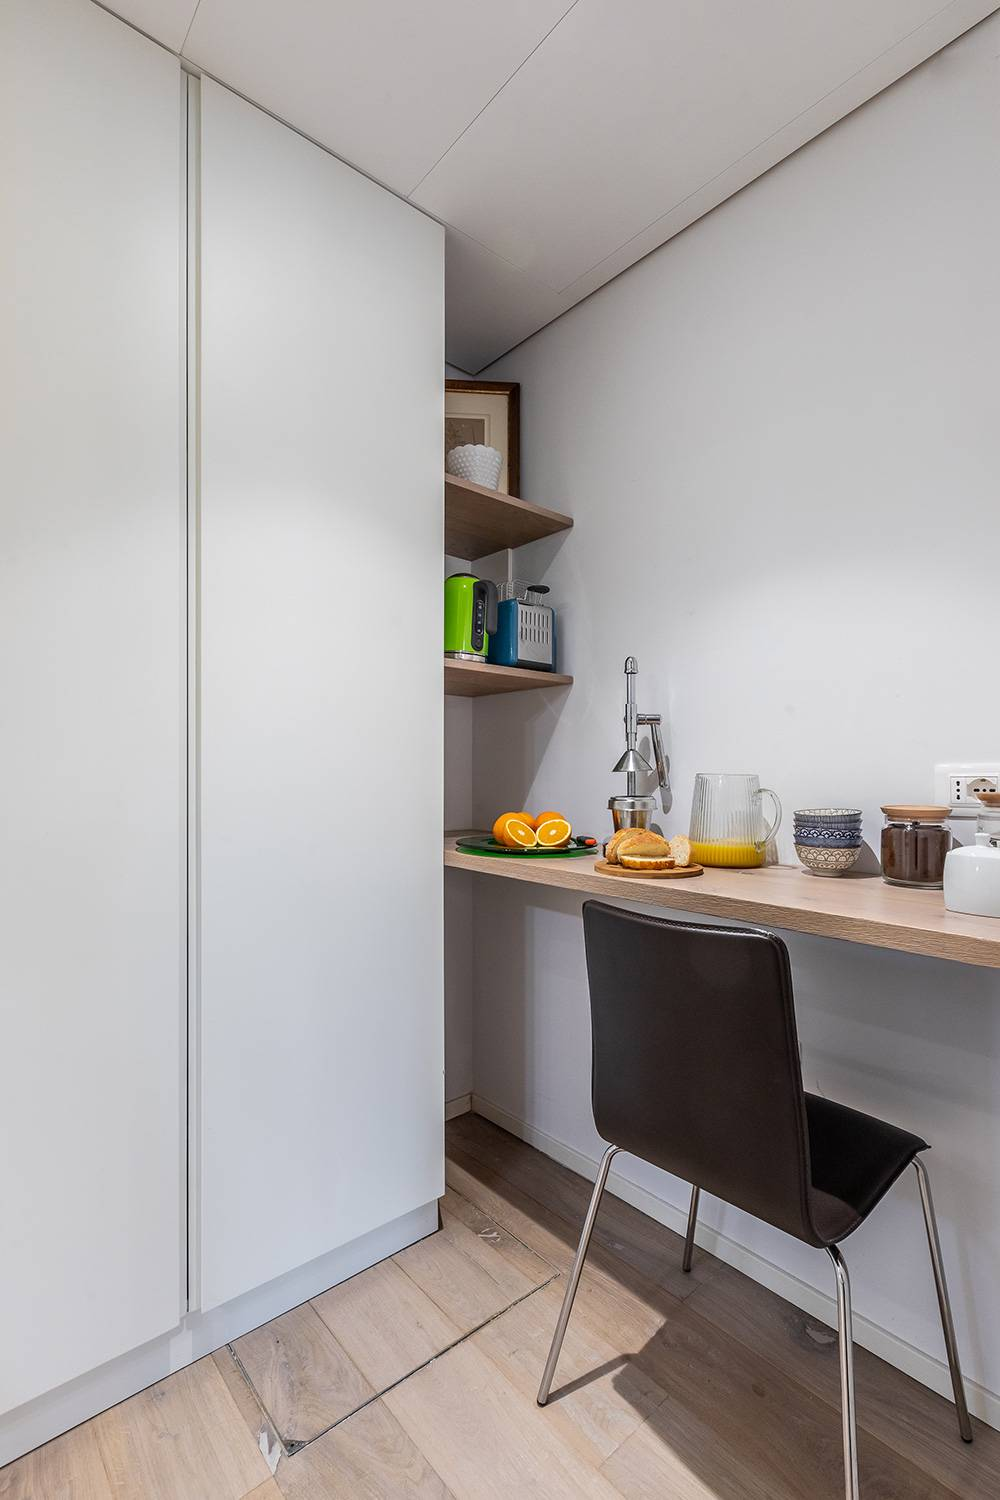 there is a breakfast corner with kettle and toaster next to the closet